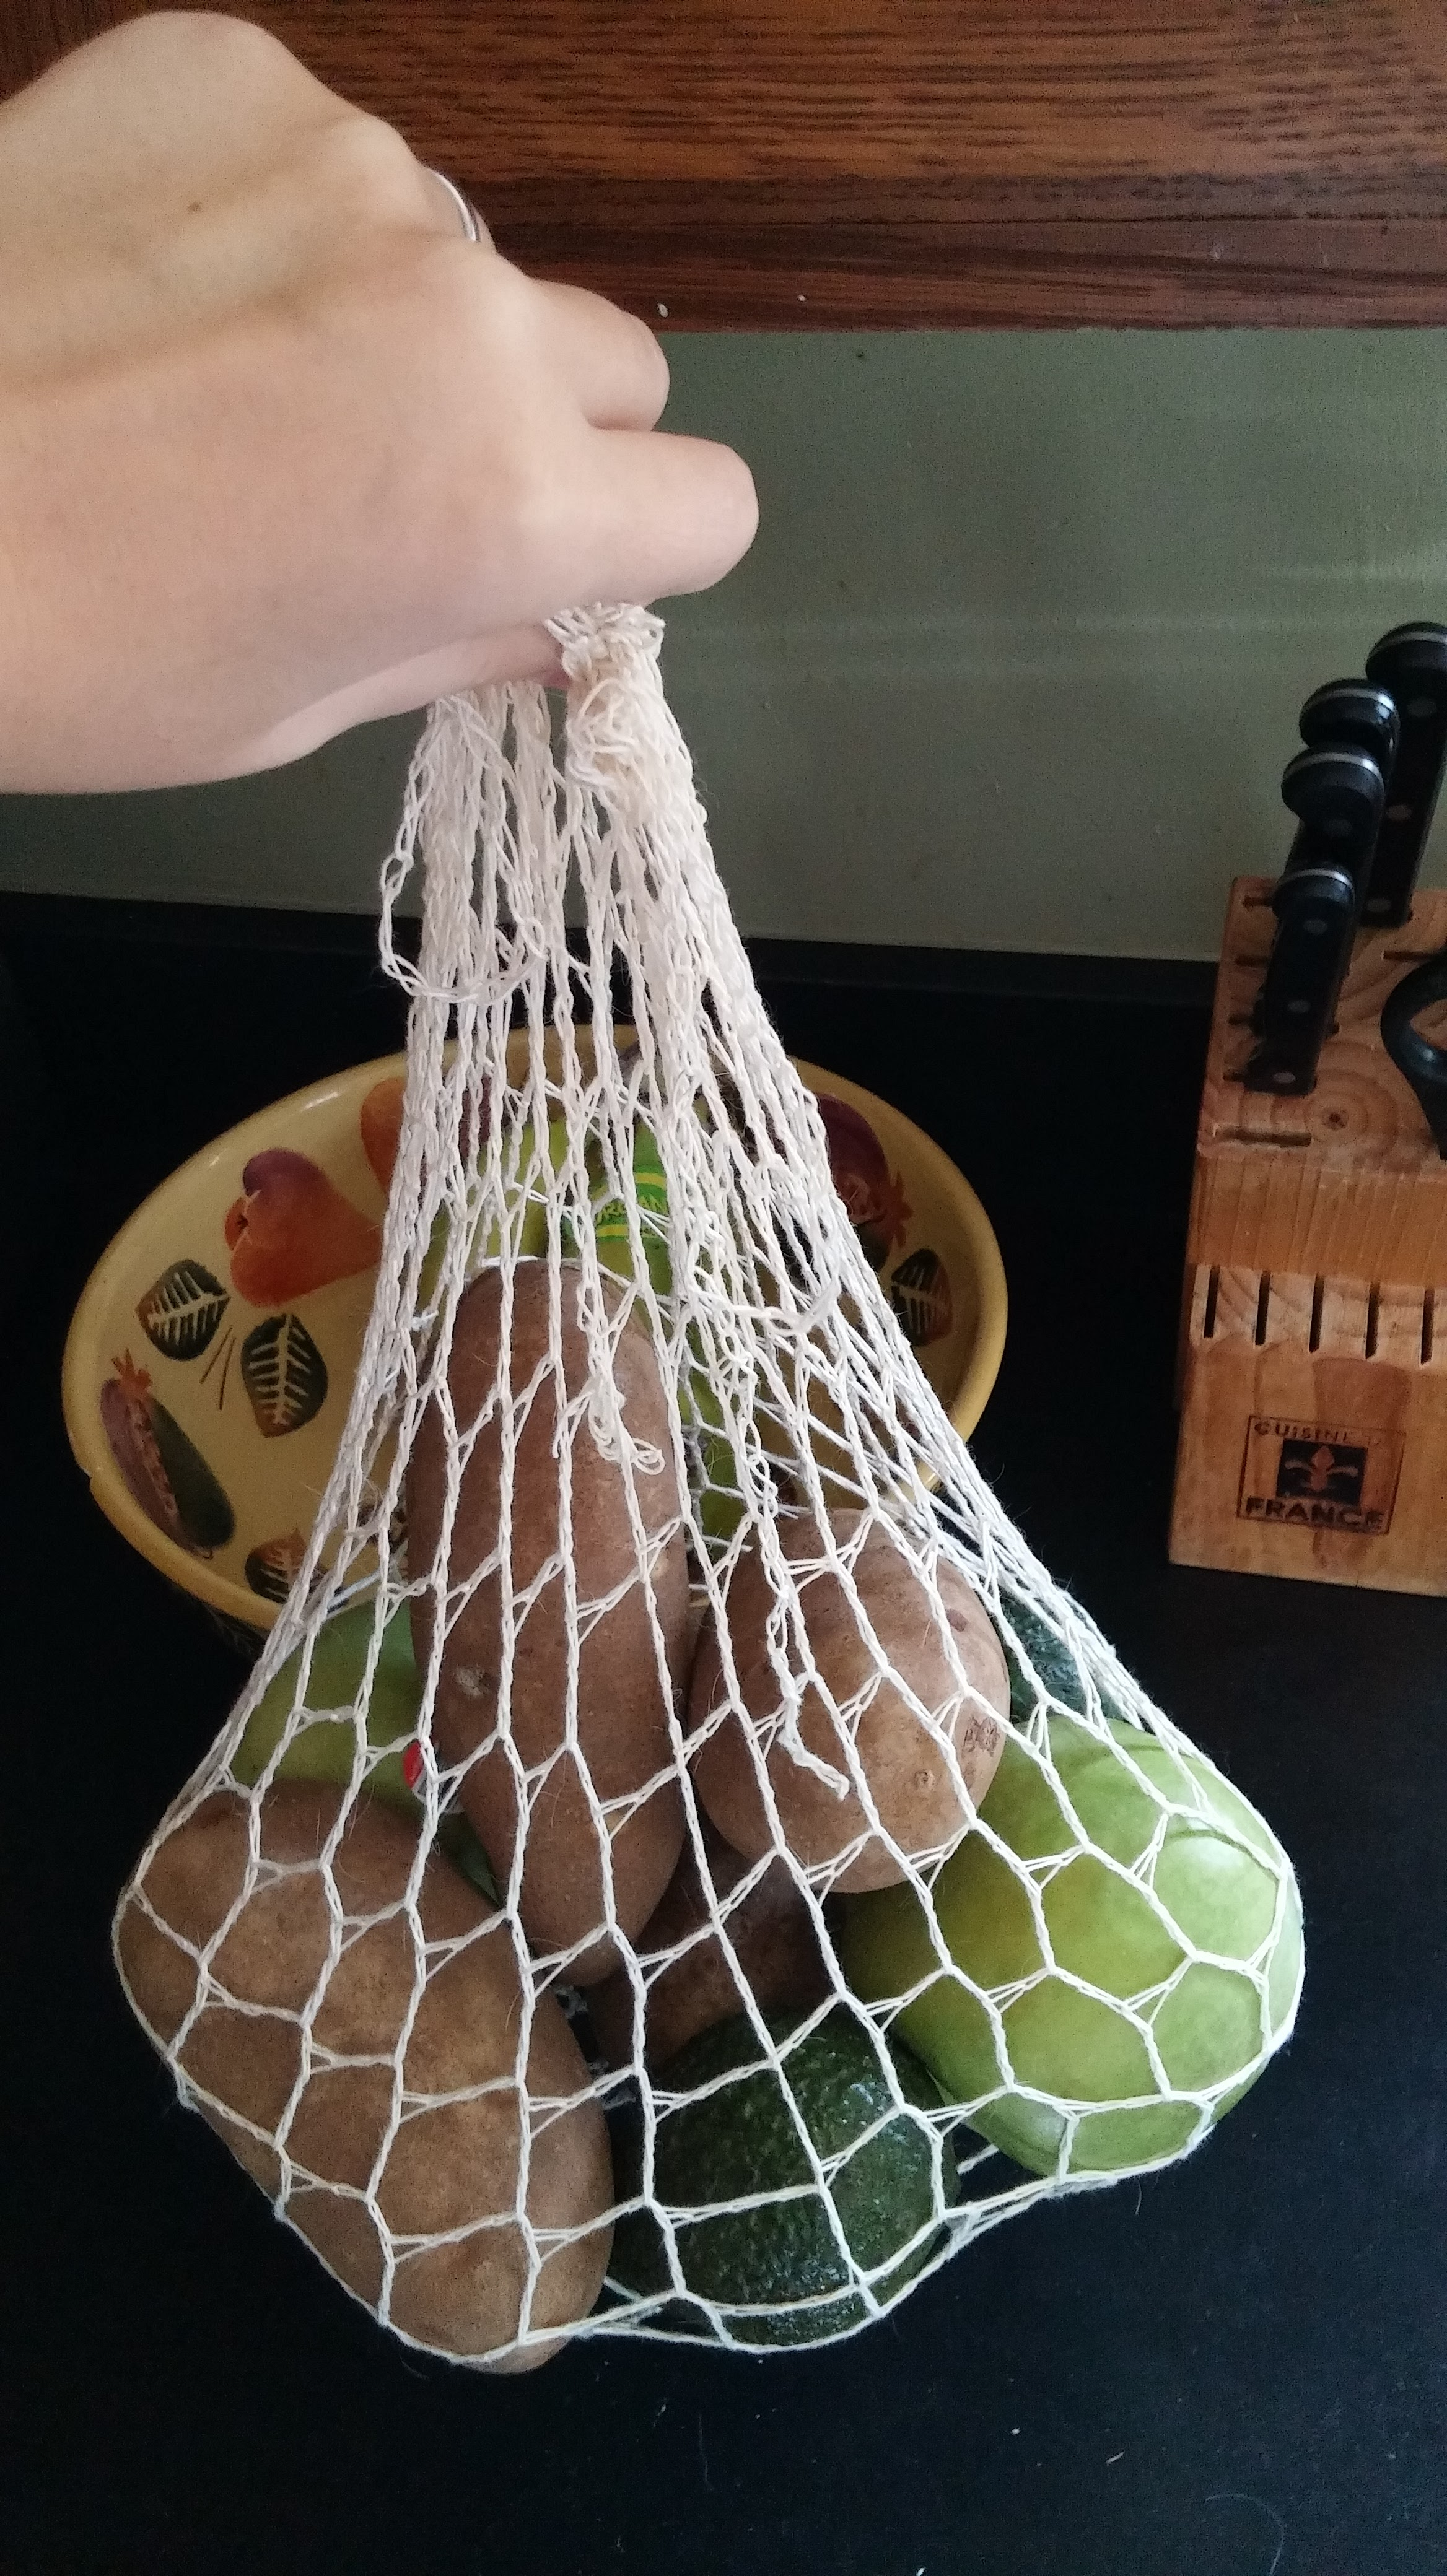 A crocheted produce bag containing 4 russet potatoes, 2 granny smith apples, and 2 small avocados